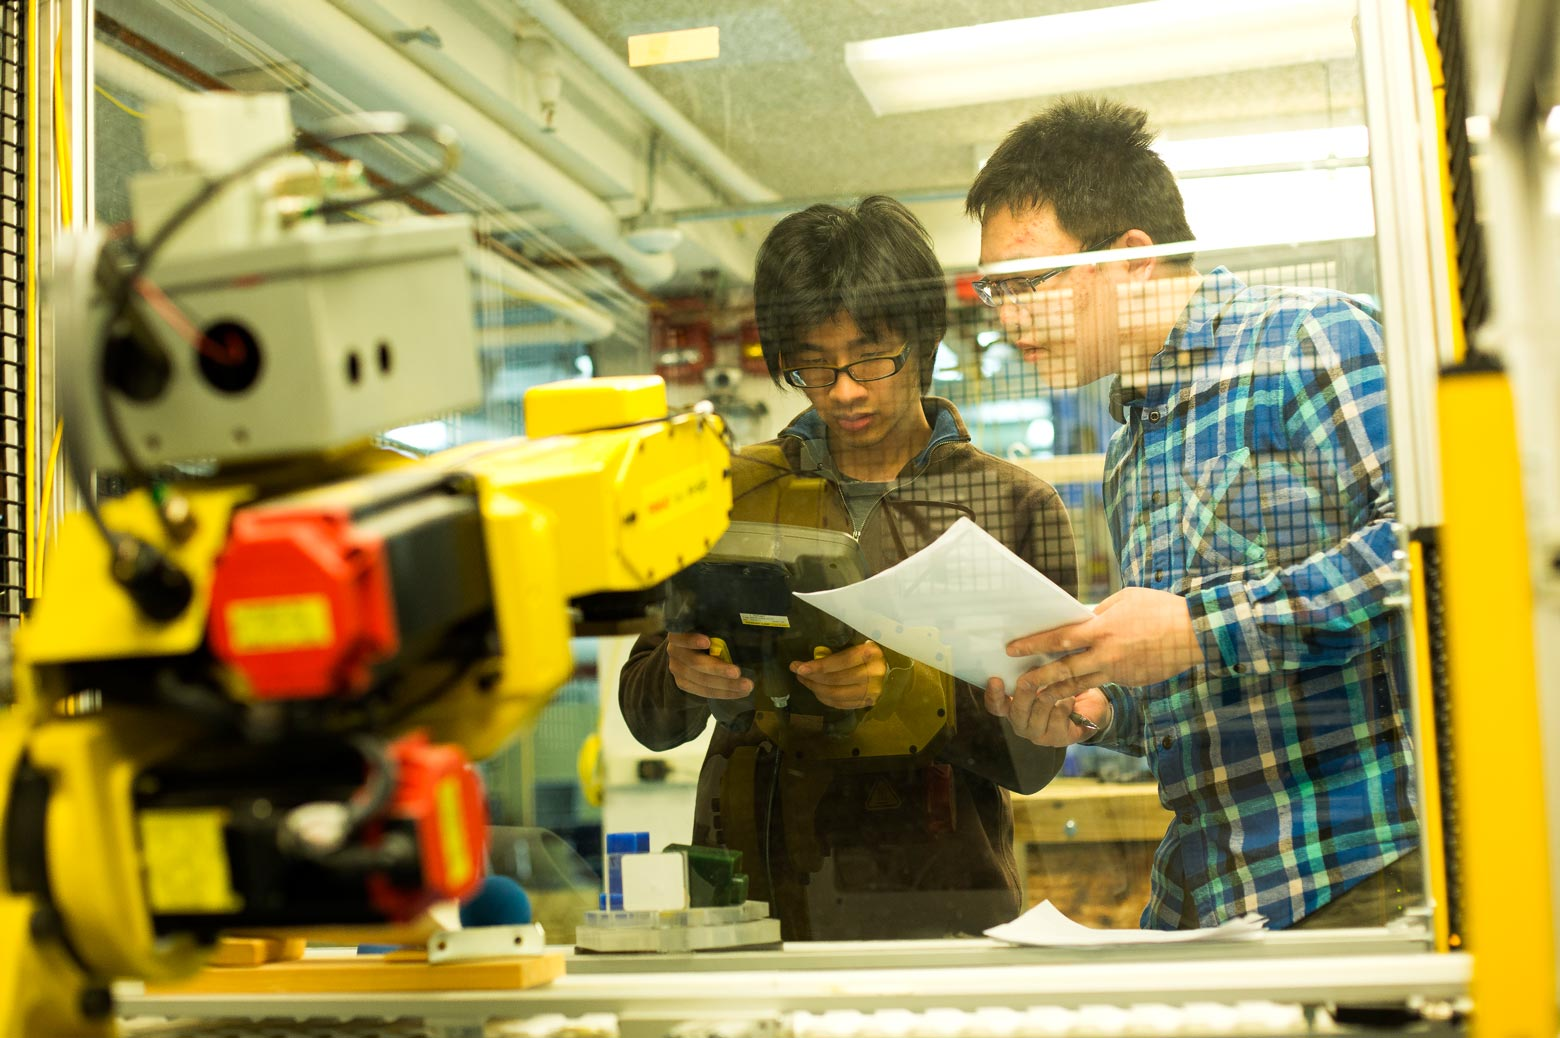 Zheming Zhang and Ming Huang work in the lab